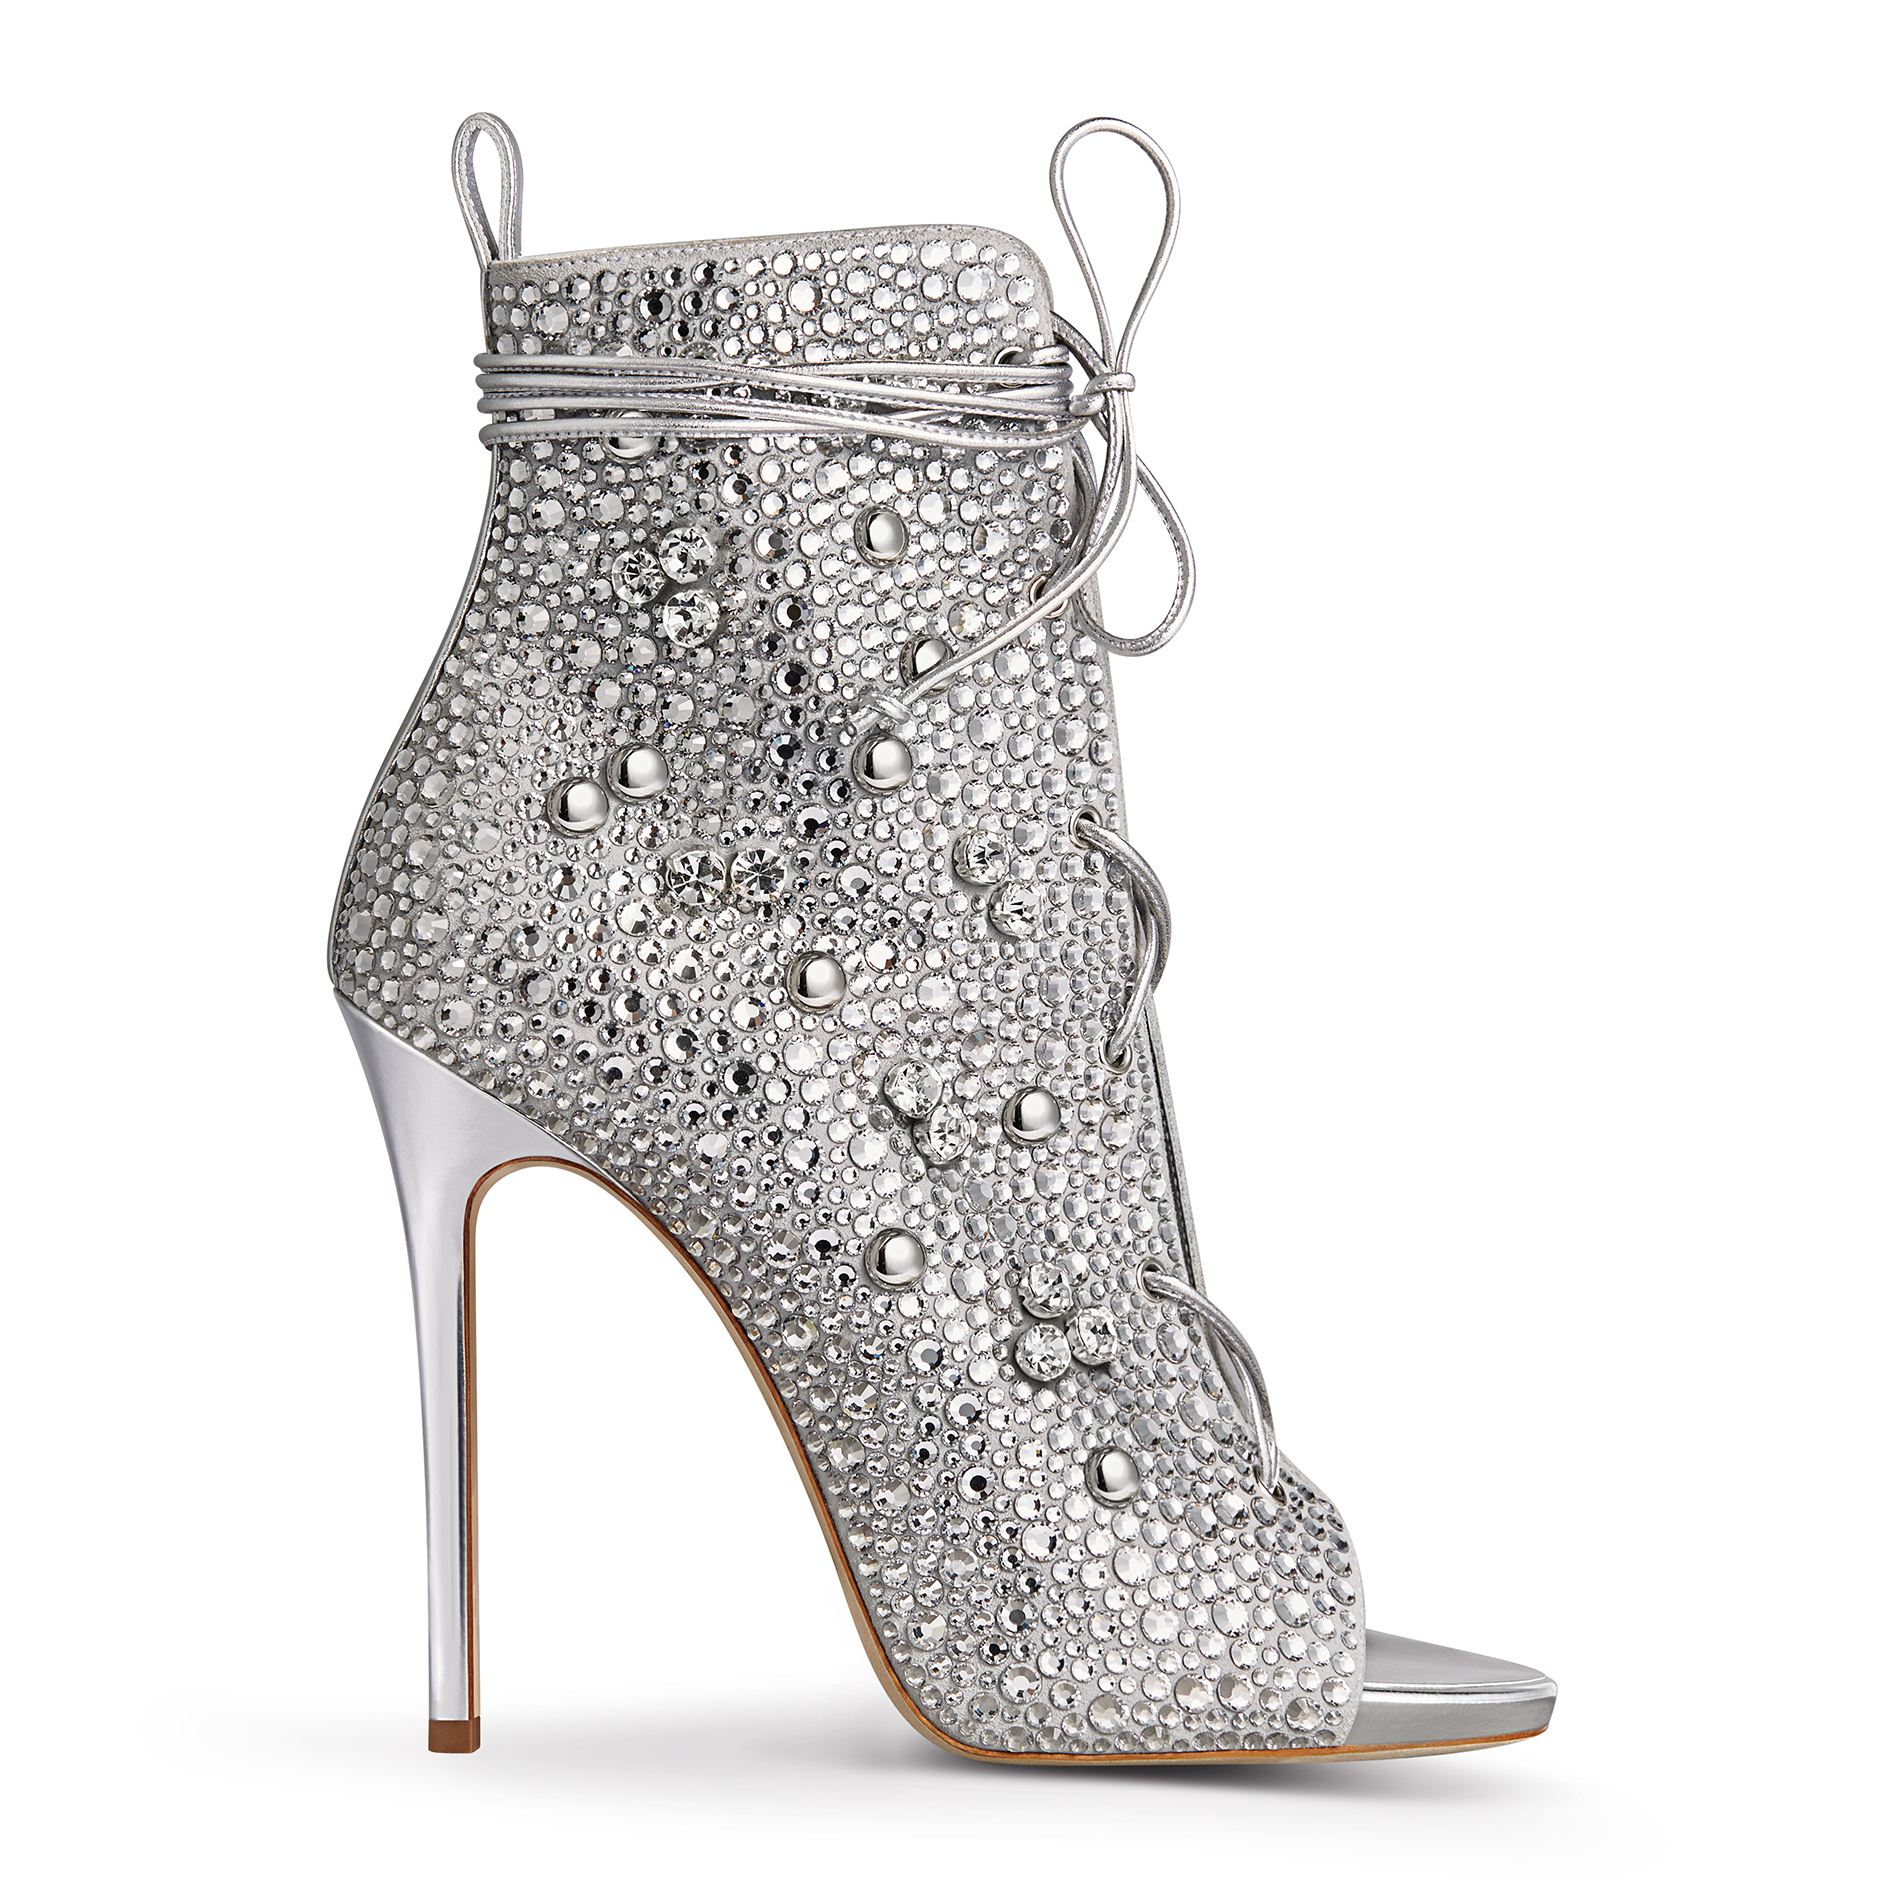 Giuseppe Zanotti Shoe heel. no credit. used only for the 1/30 style- Jennifer Lopez Story. Must contact Sharon.Kanter@peoplemag.com